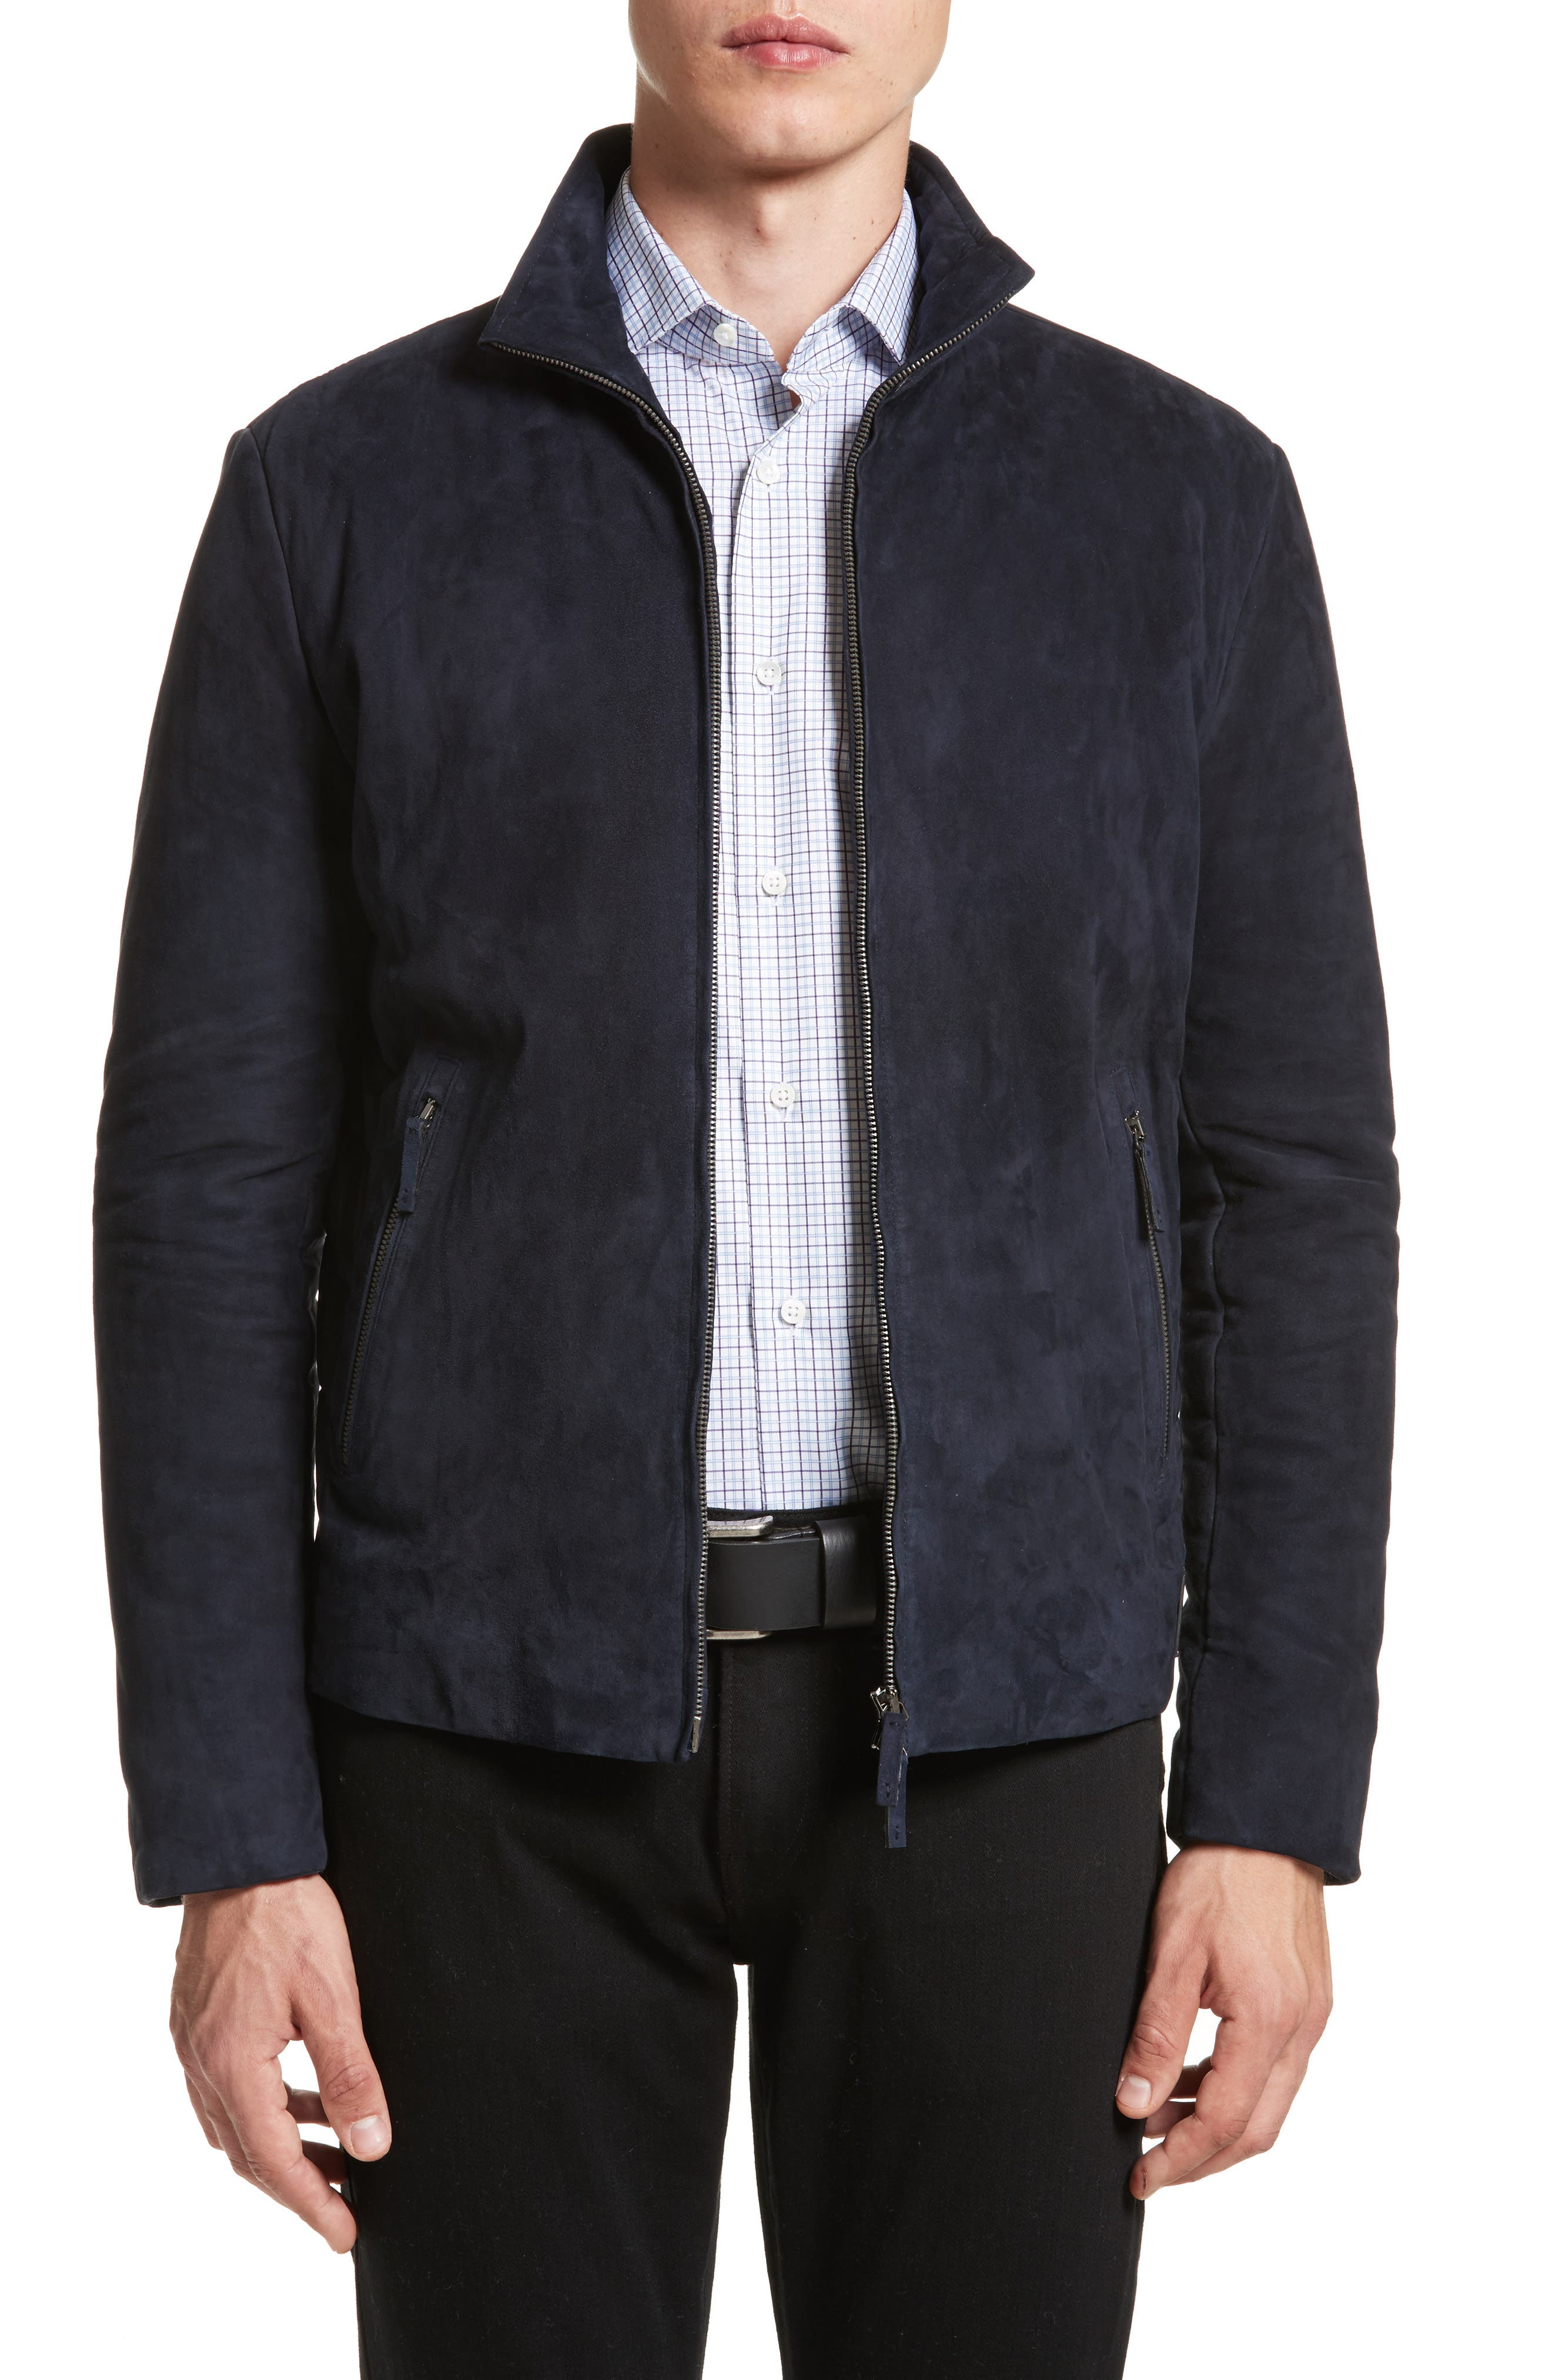 Alternate Image 1 Selected - Armani Collezioni Regular Fit Mixed Media Jacket